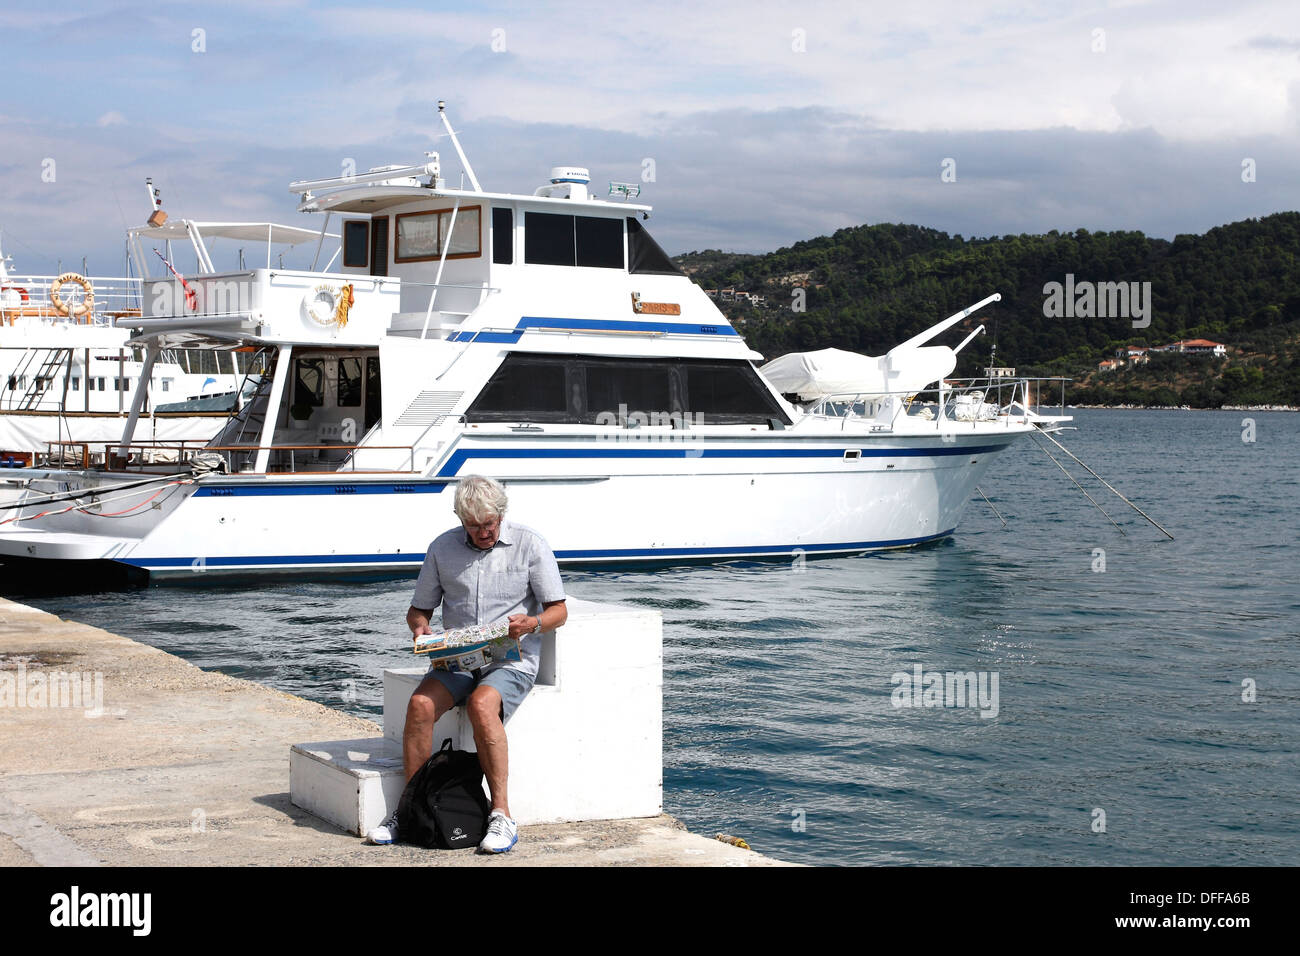 A tourist sits studying a map in front of boats moored in the New